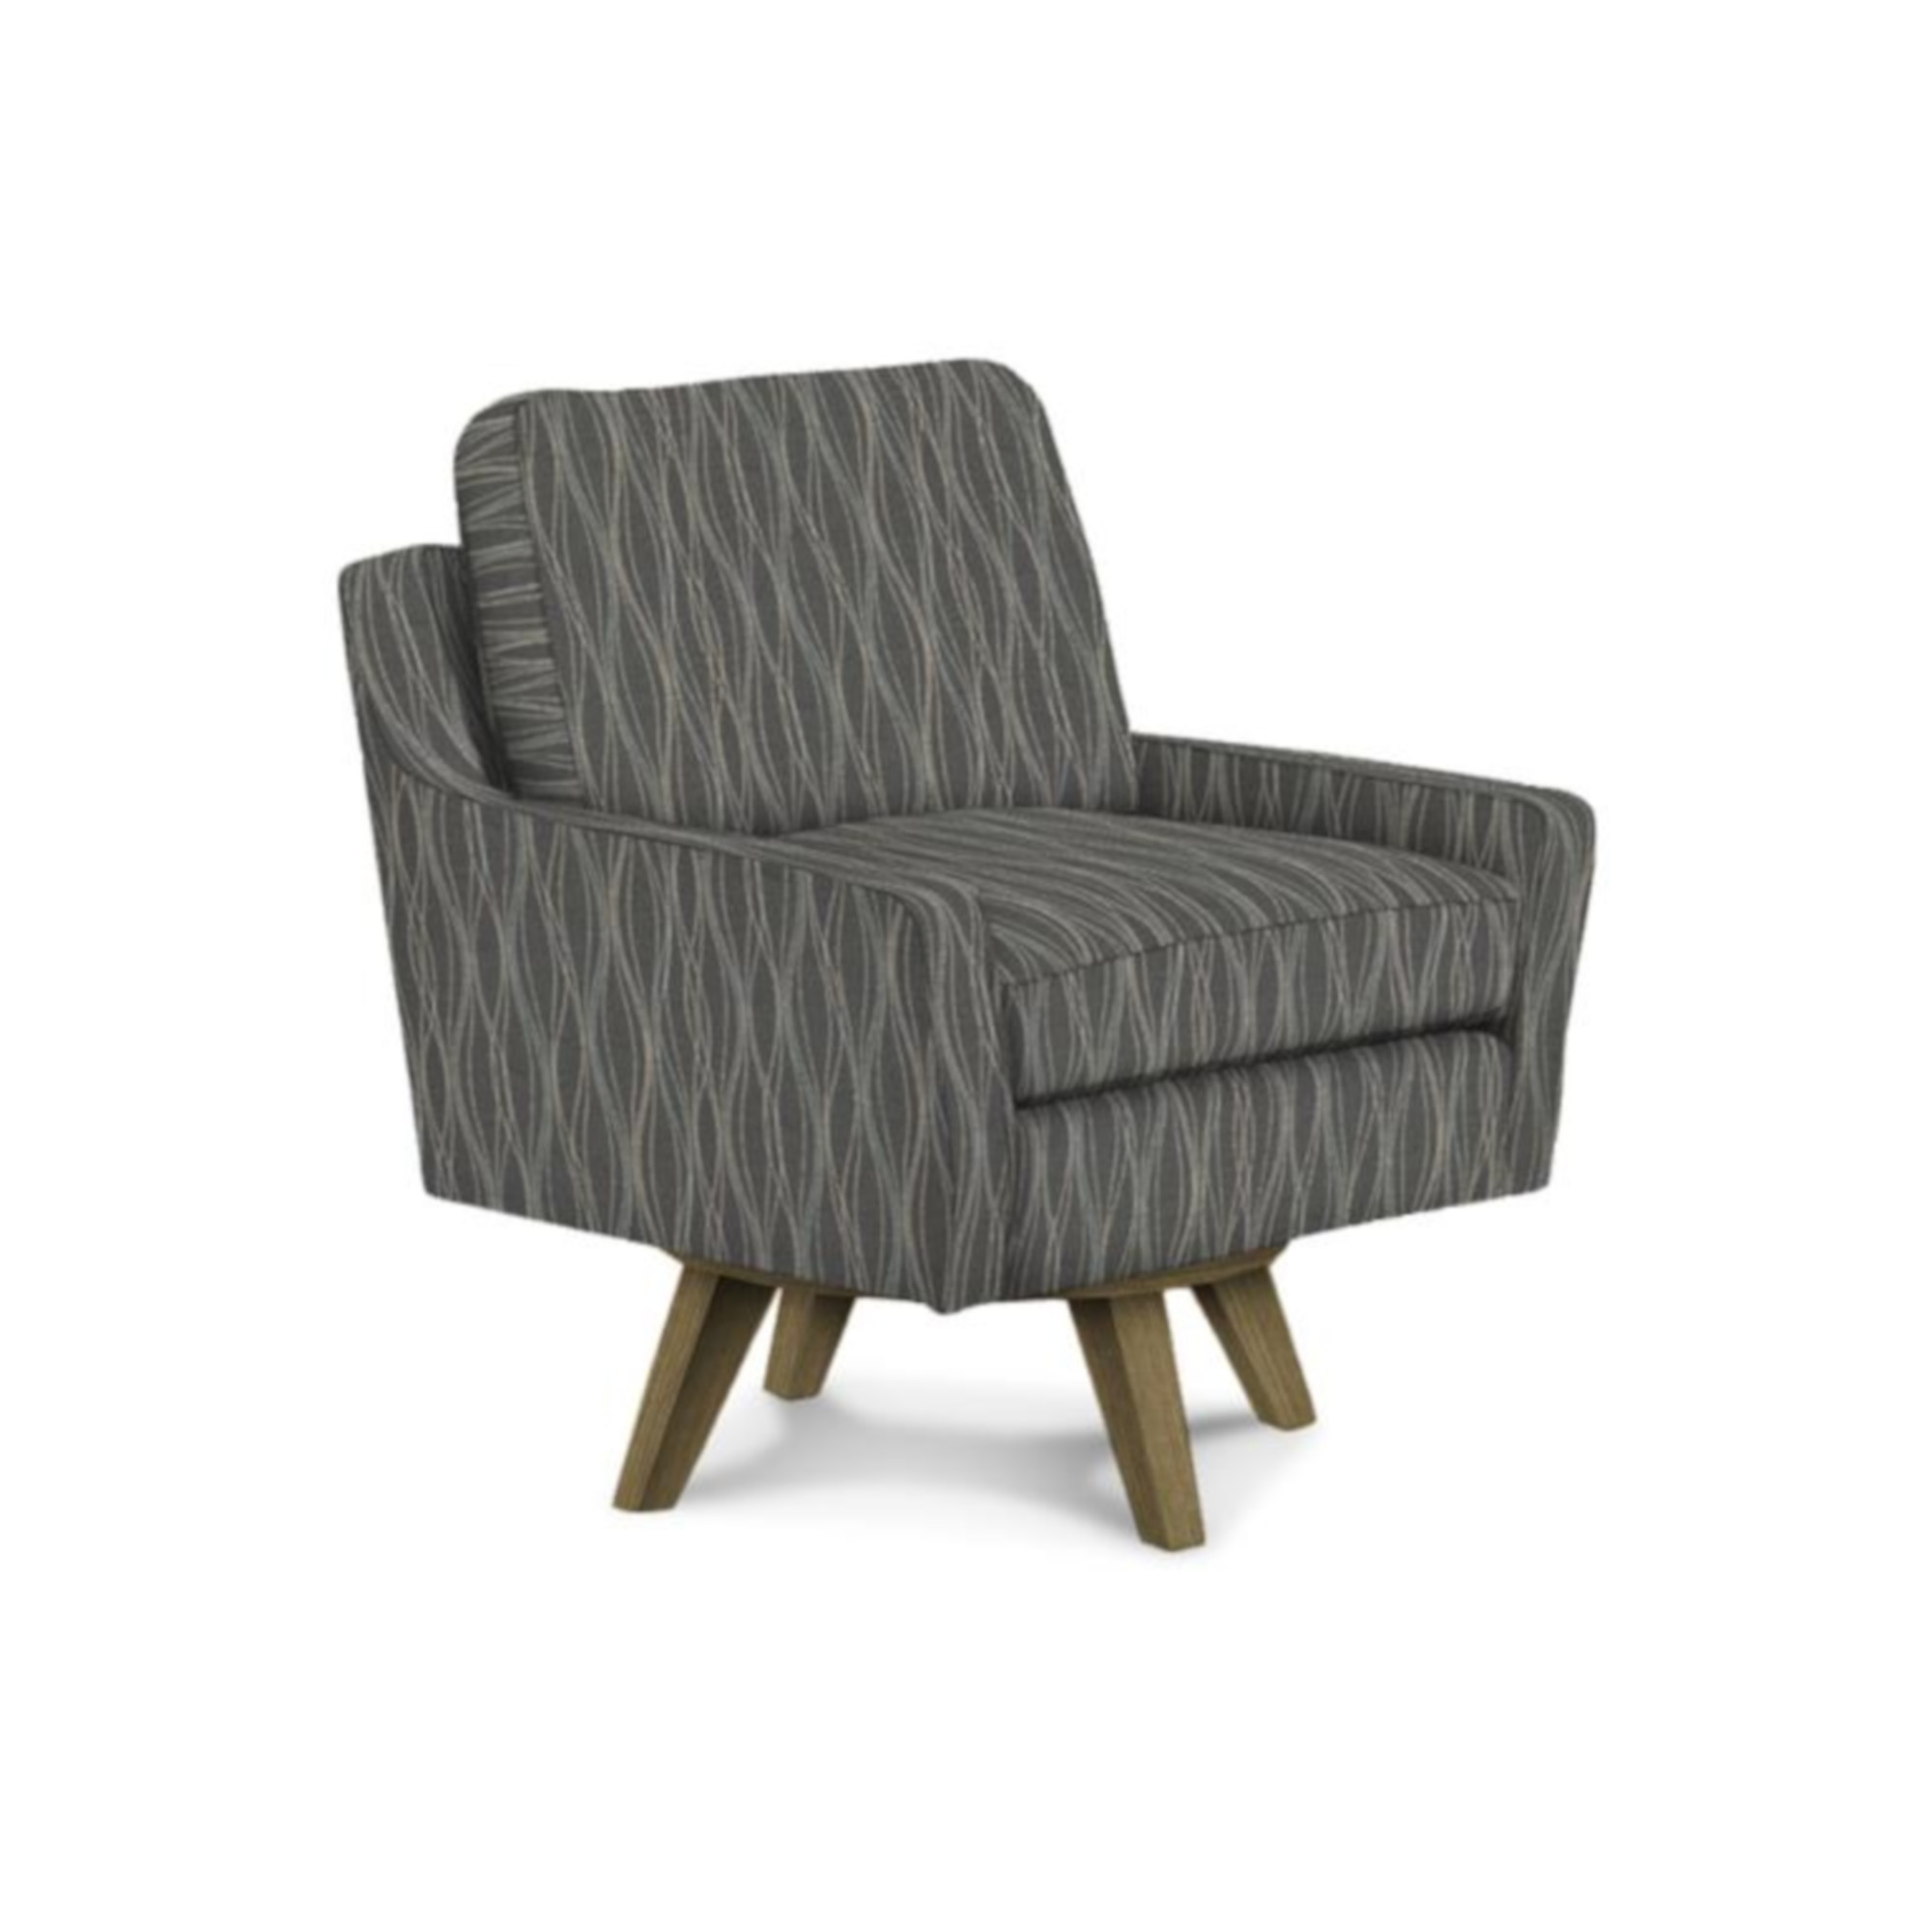 Image of: Seymour Swivel Chair In Blue Rockridge Furniture Design